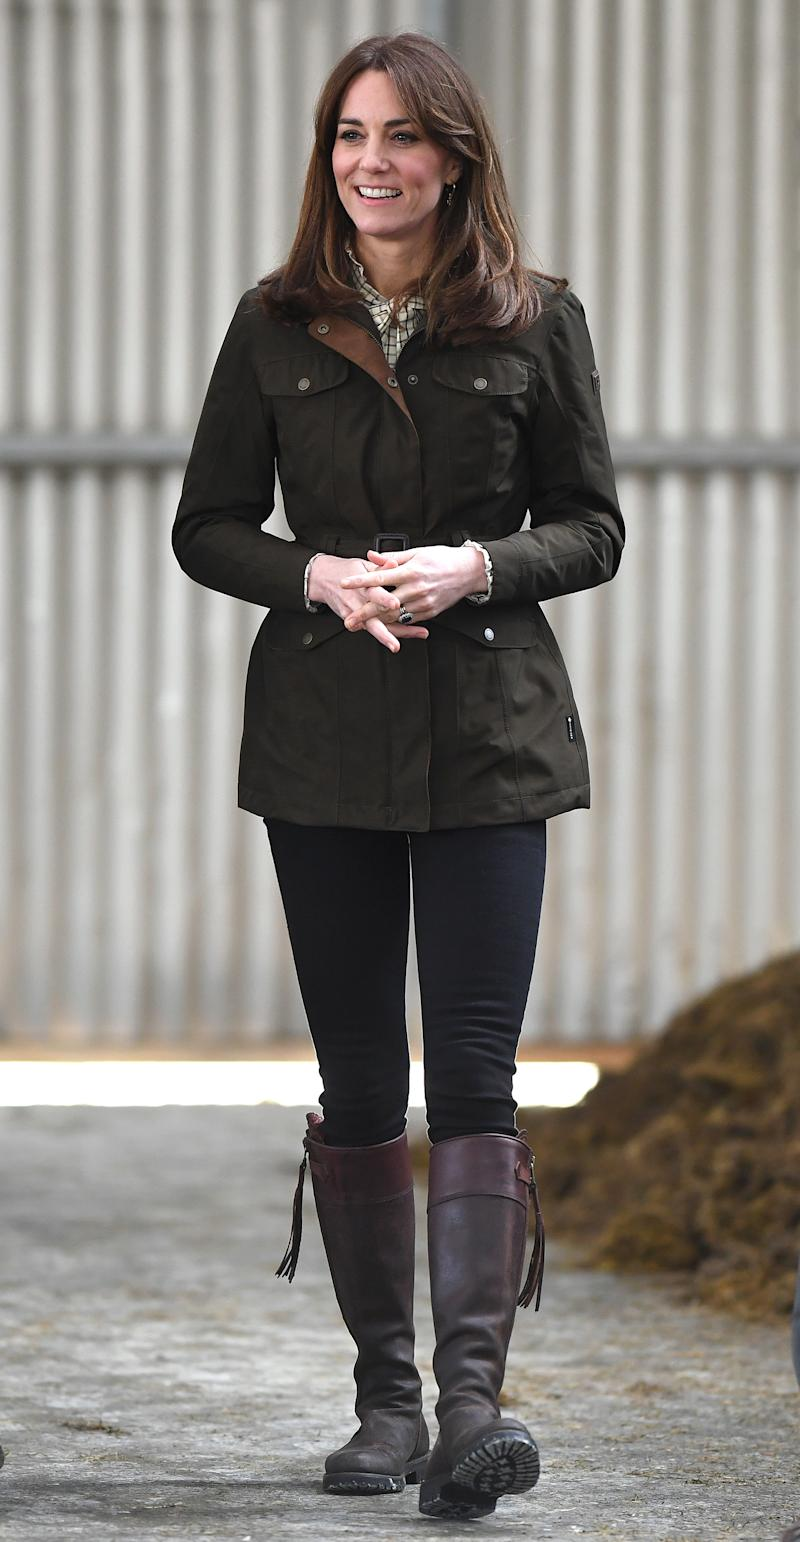 Kate Middleton wears Barbour shirt on royal tour in Ireland